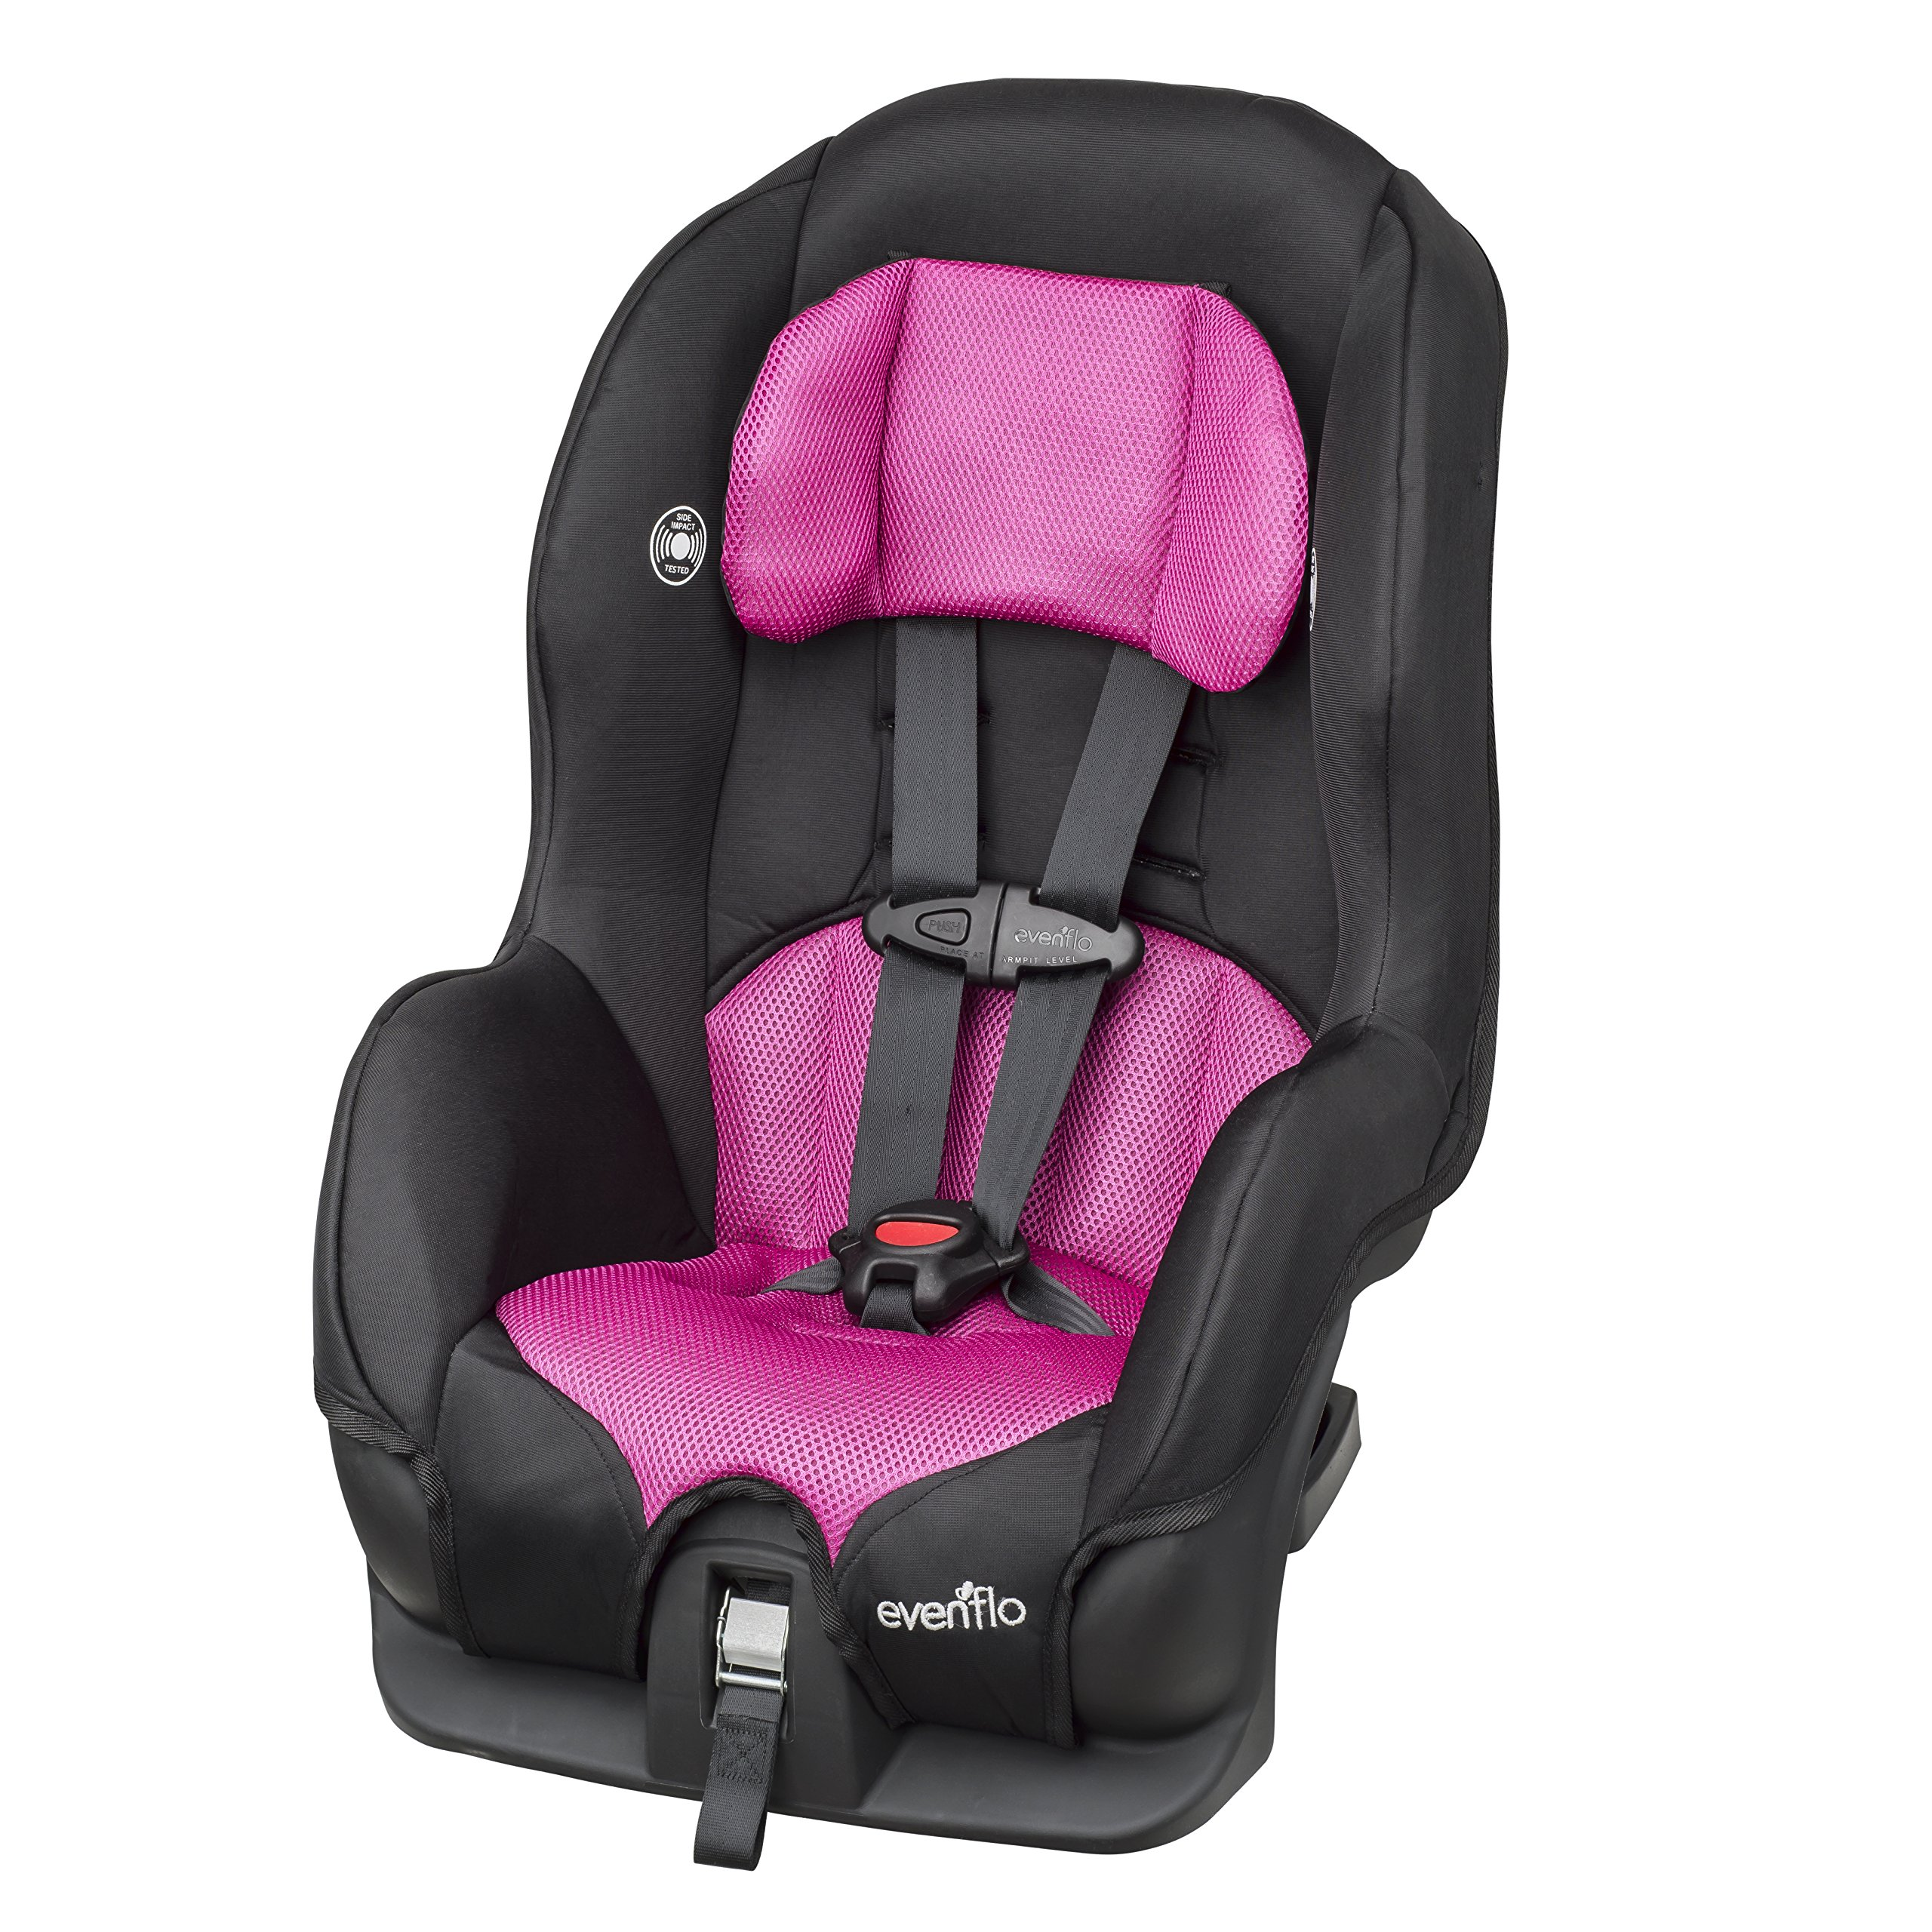 Amazon.com : Evenflo Tribute LX Convertible Car Seat - Neptune : Baby